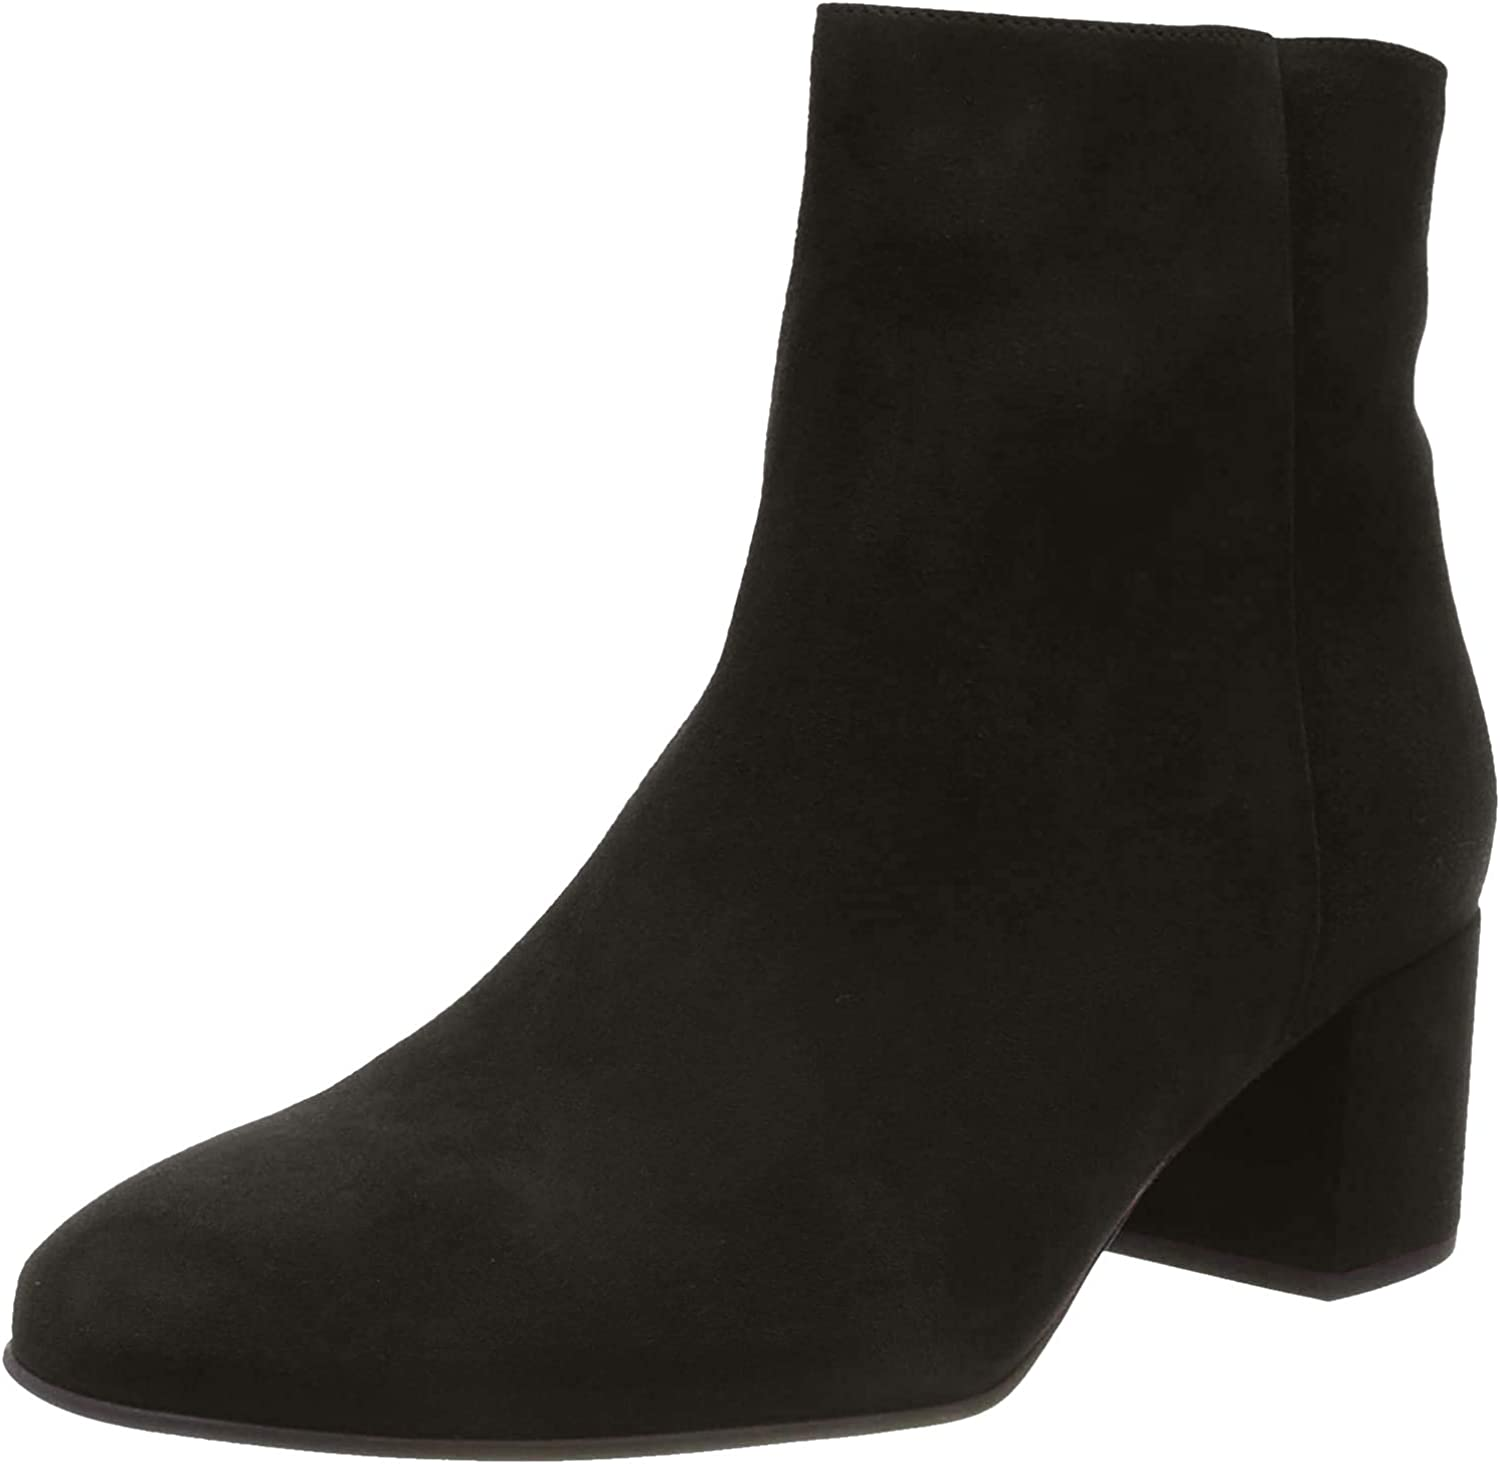 HÖGL DAYDREAM Women's Ankle Boots Black Discount mail order Sales 0 boots schwarz